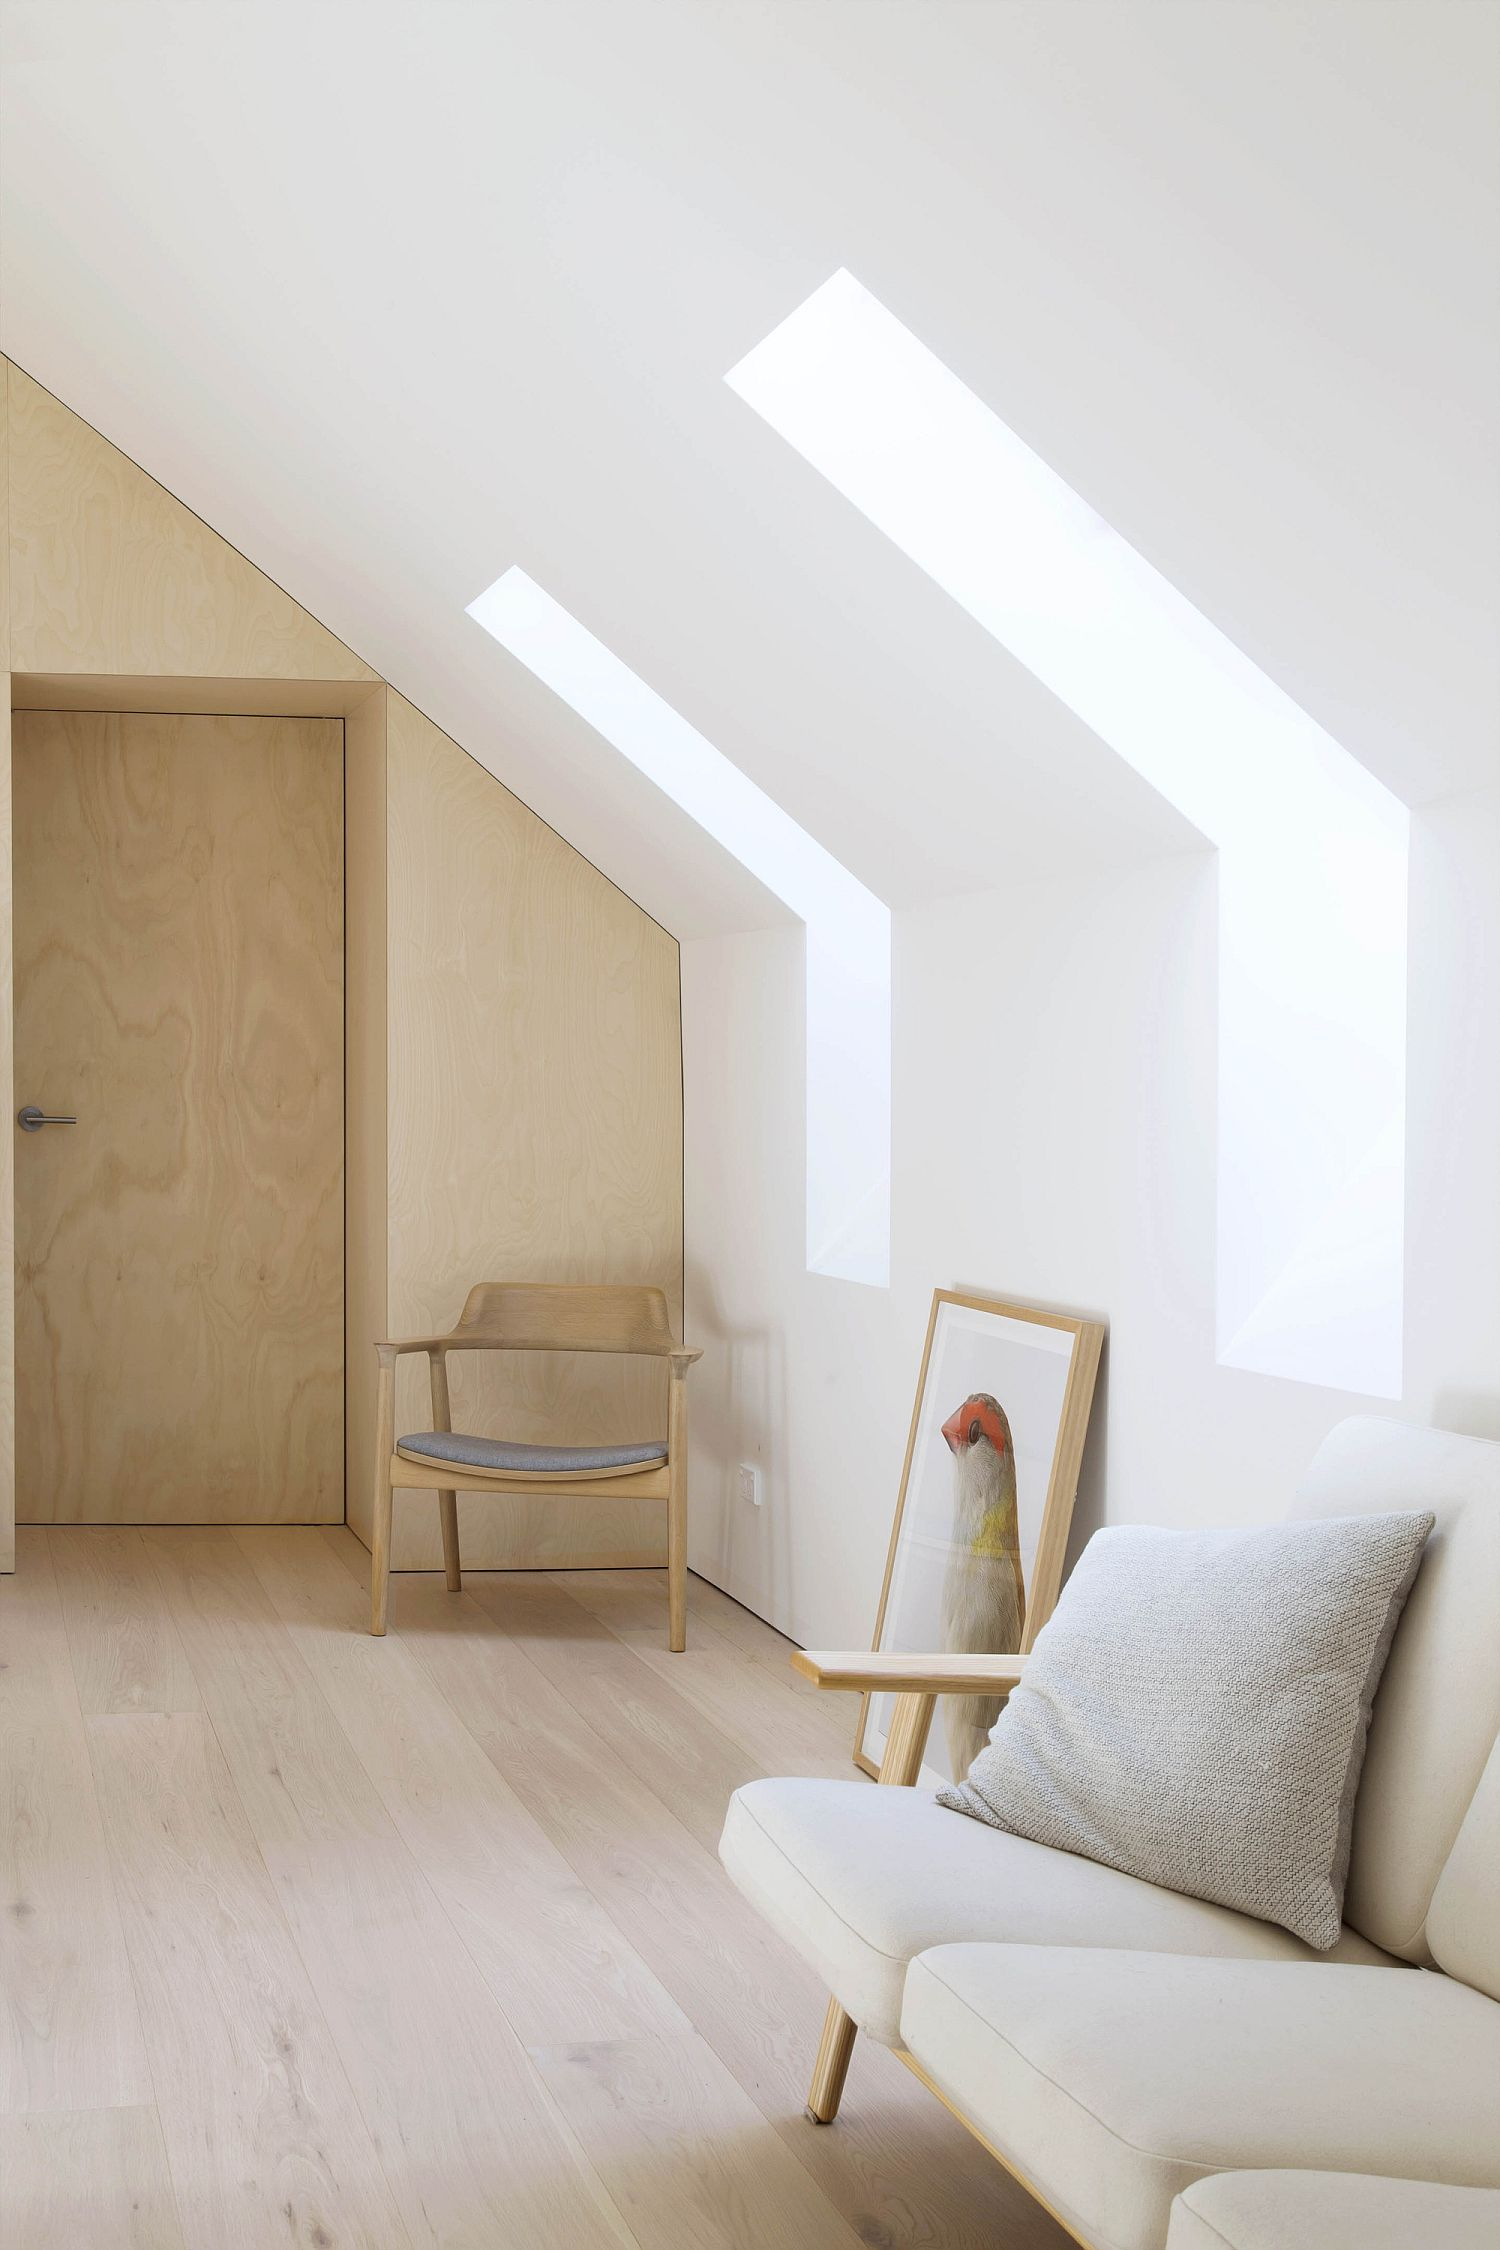 Lighting adds to the cheerful minimal appeal of the Scandinavian style interior